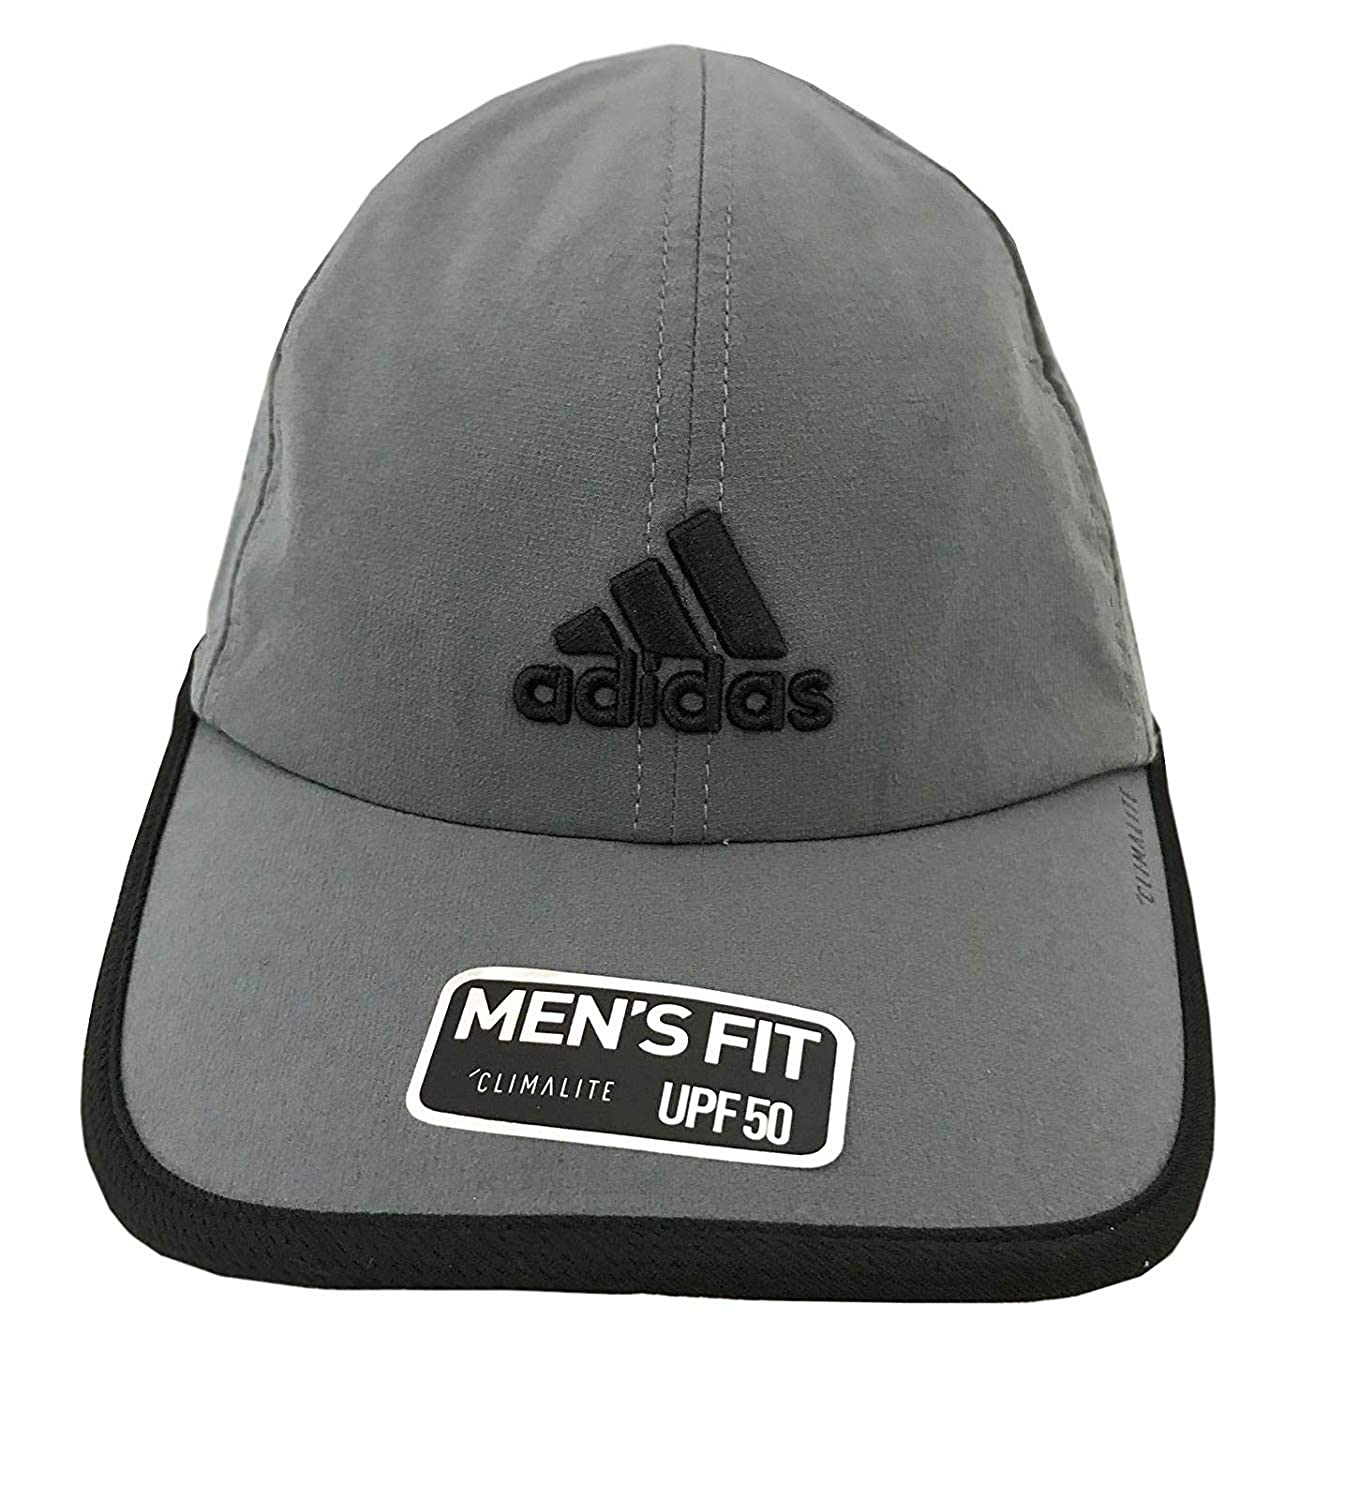 43c58467b3f Amazon.com  adidas Men s Fit Climalite UPF 50 Cap Hat (Black Grey)  Sports    Outdoors